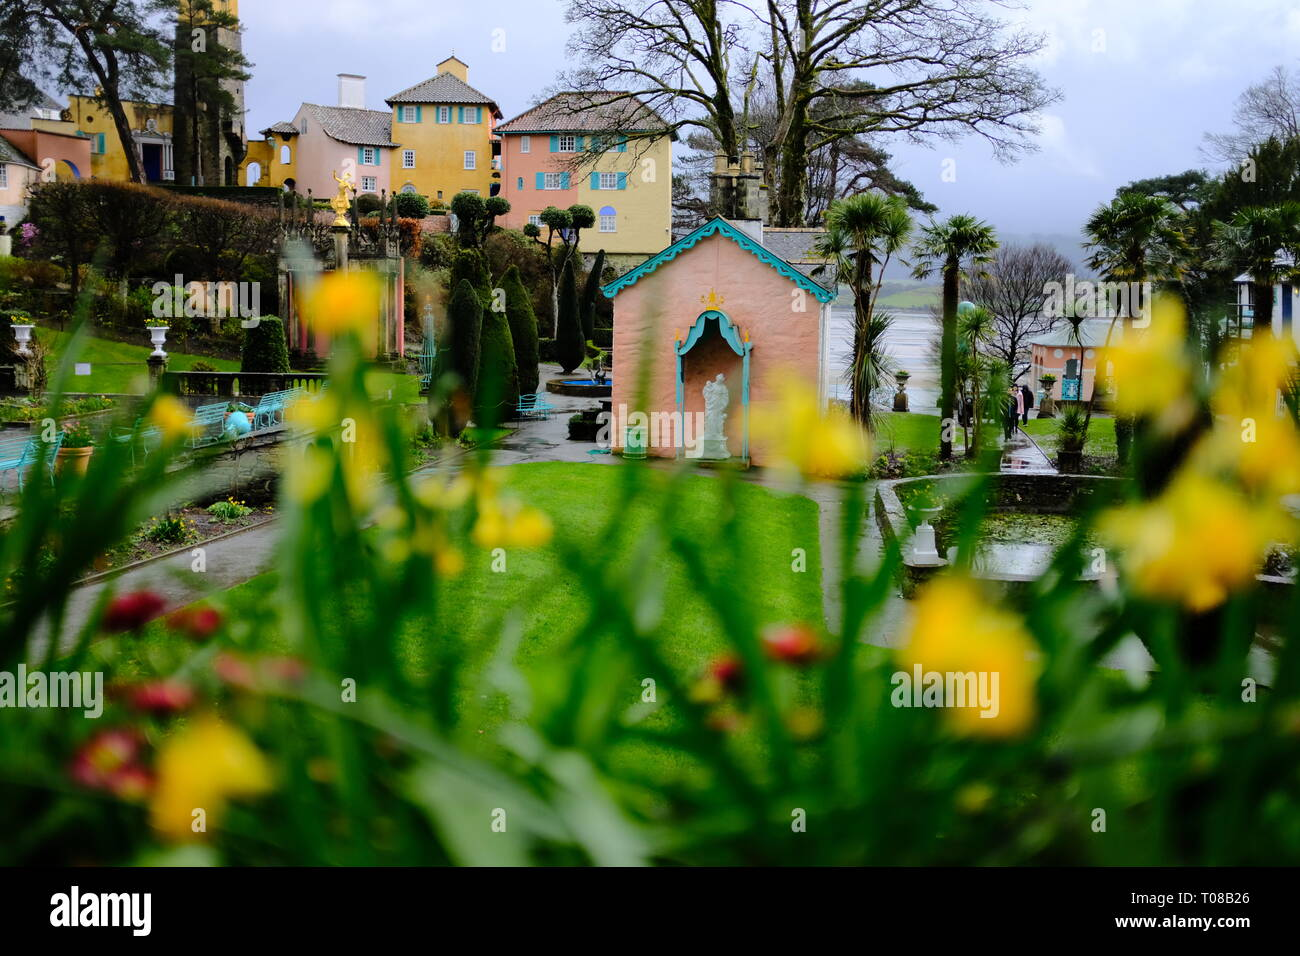 the Italian style central piazza of Portmeirion village Stock Photo